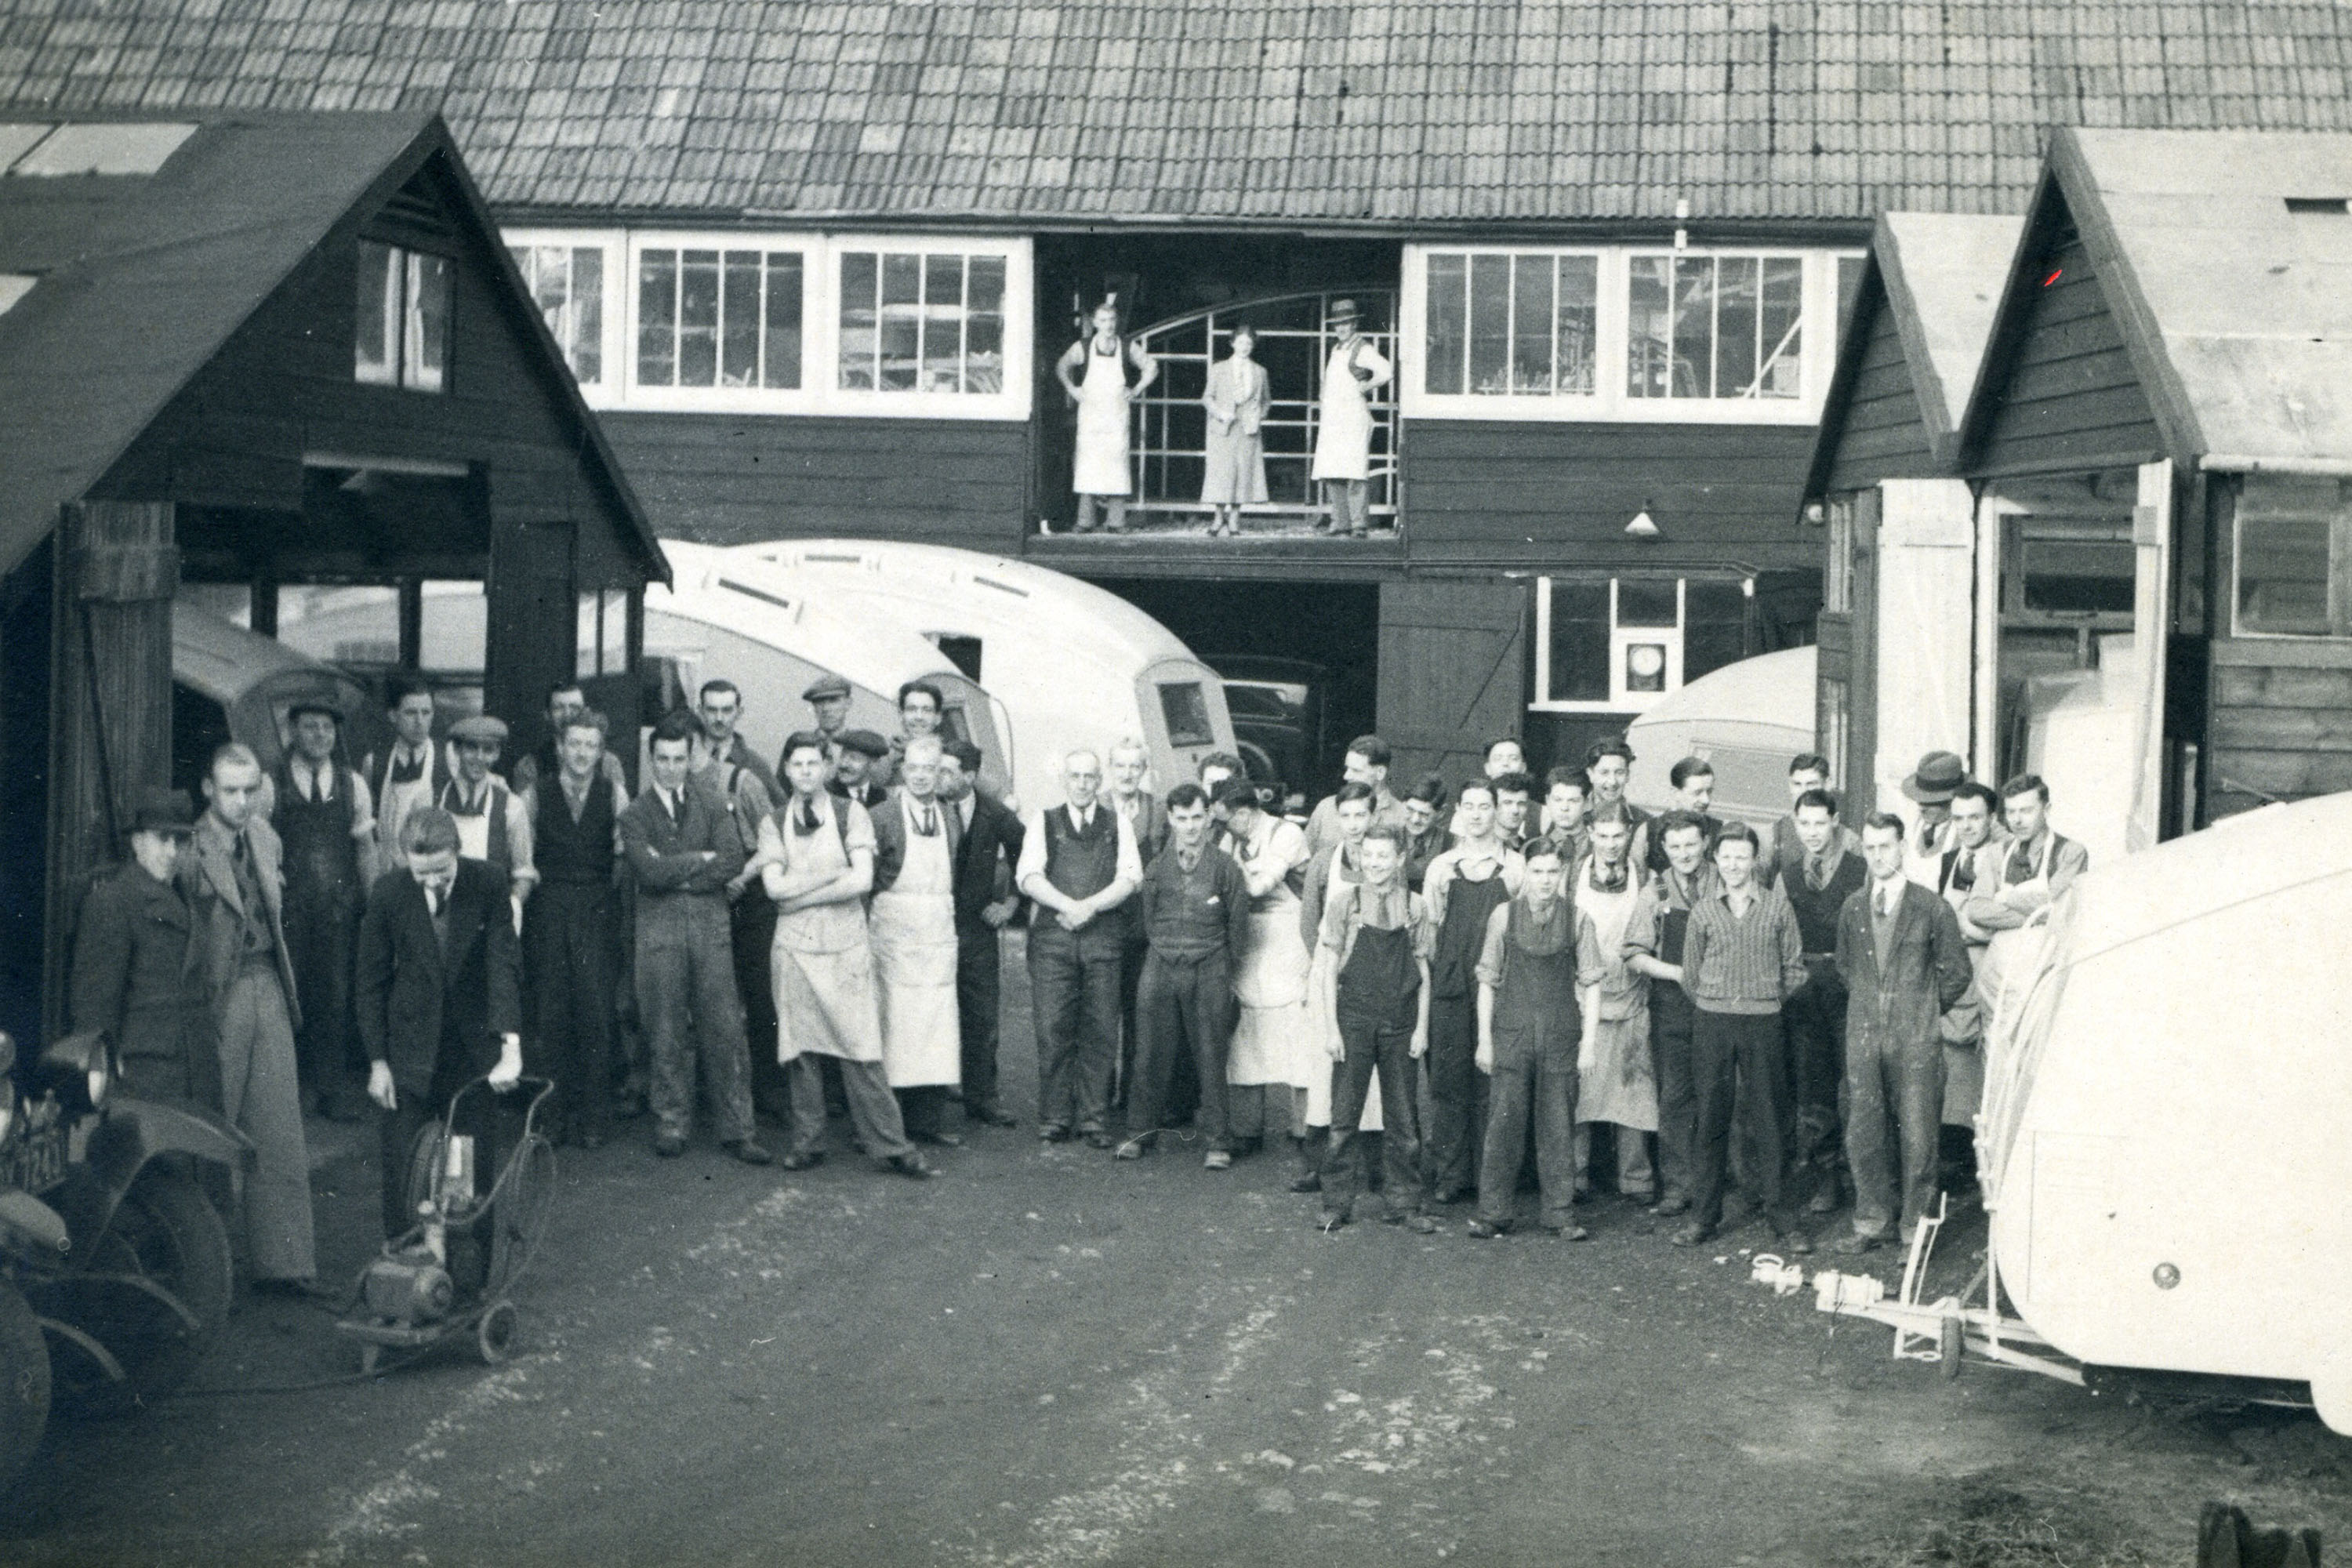 A view of a caravan workshop with employees